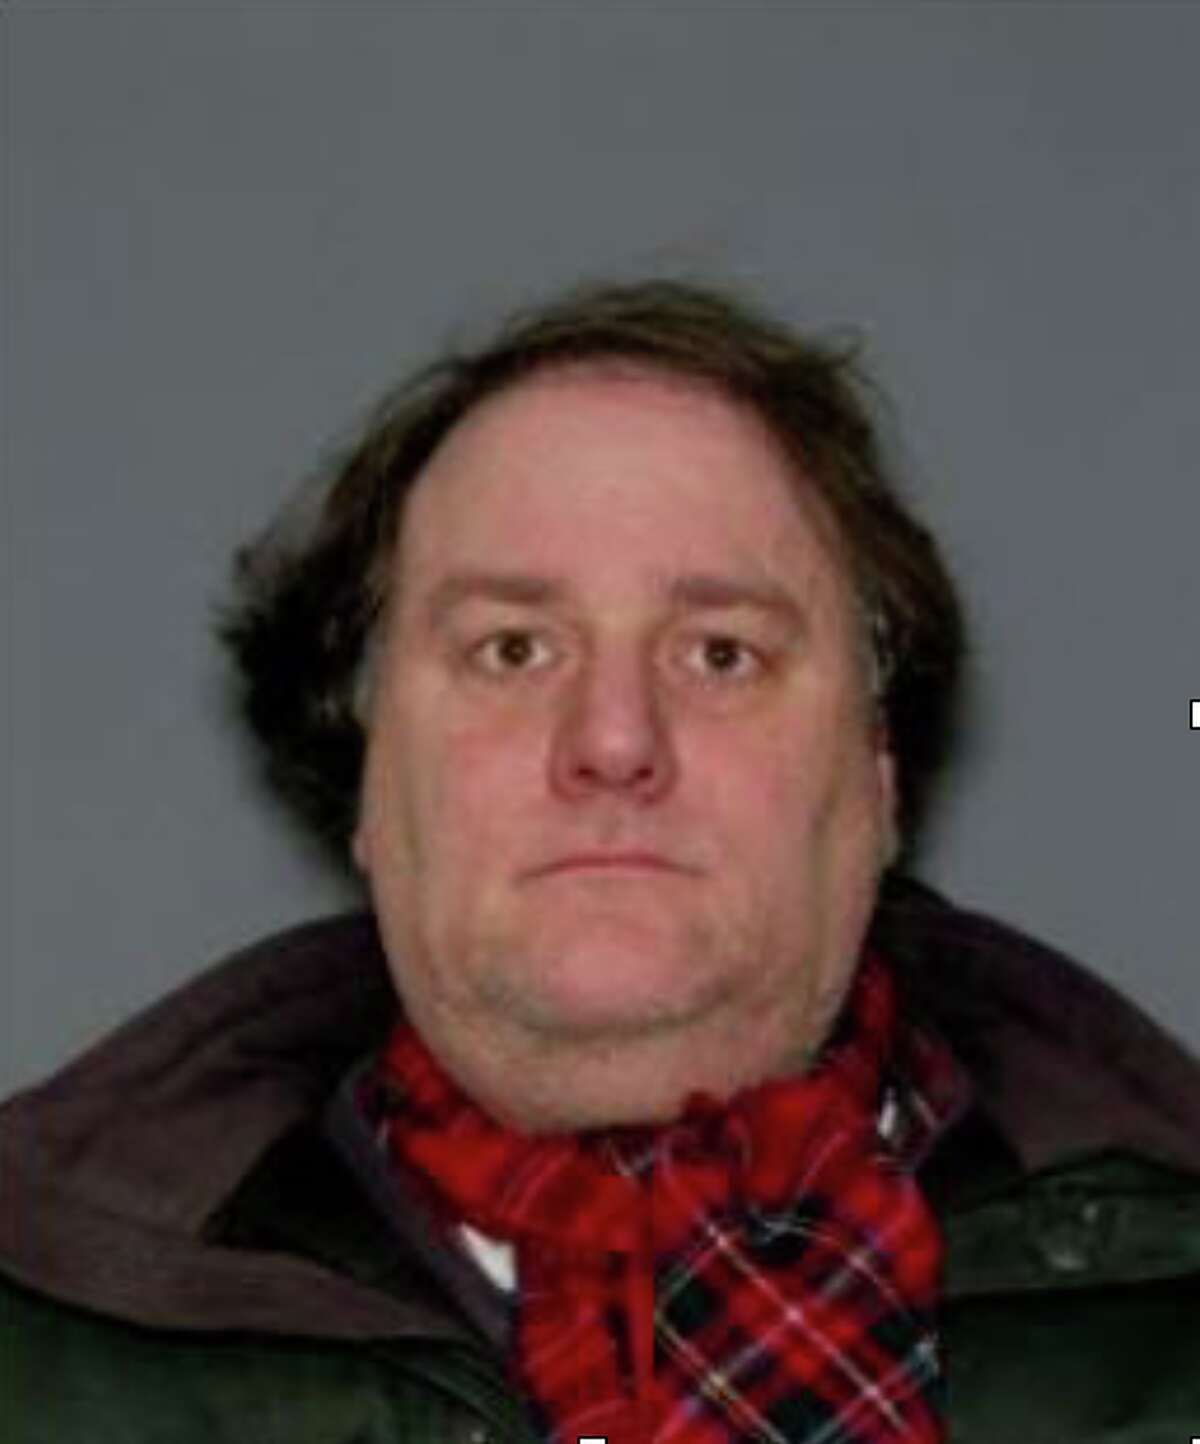 Michael A. Belloise, 60, is missing in East Greenbush. Town police are asking for the public to reach out with any information about his possible whereabouts.